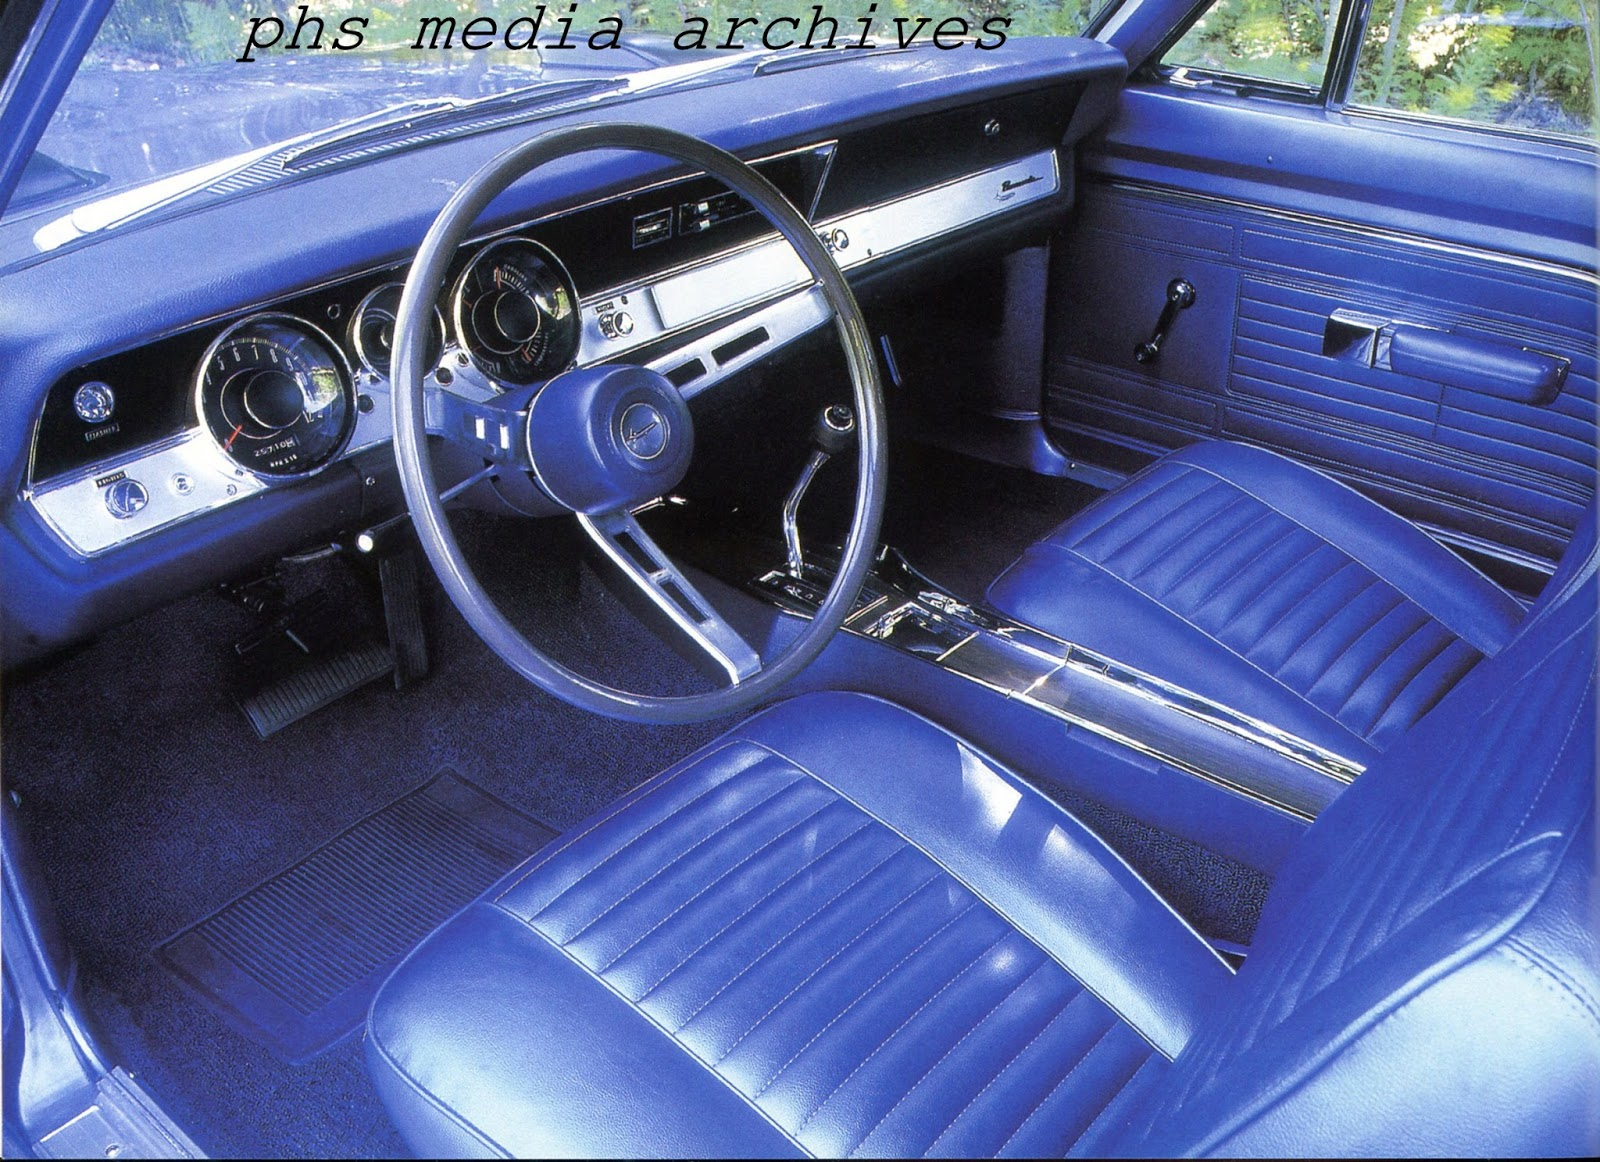 Phscollectorcarworld May 2016 196667 396 427 W O Power Steering Diagram View Chicago Corvette Today These Rare Cars Are Still Priced Reasonably Compared To The 1970 Up E Body Brotherswe Suspect Limited Awareness Of Model Along With Handling And